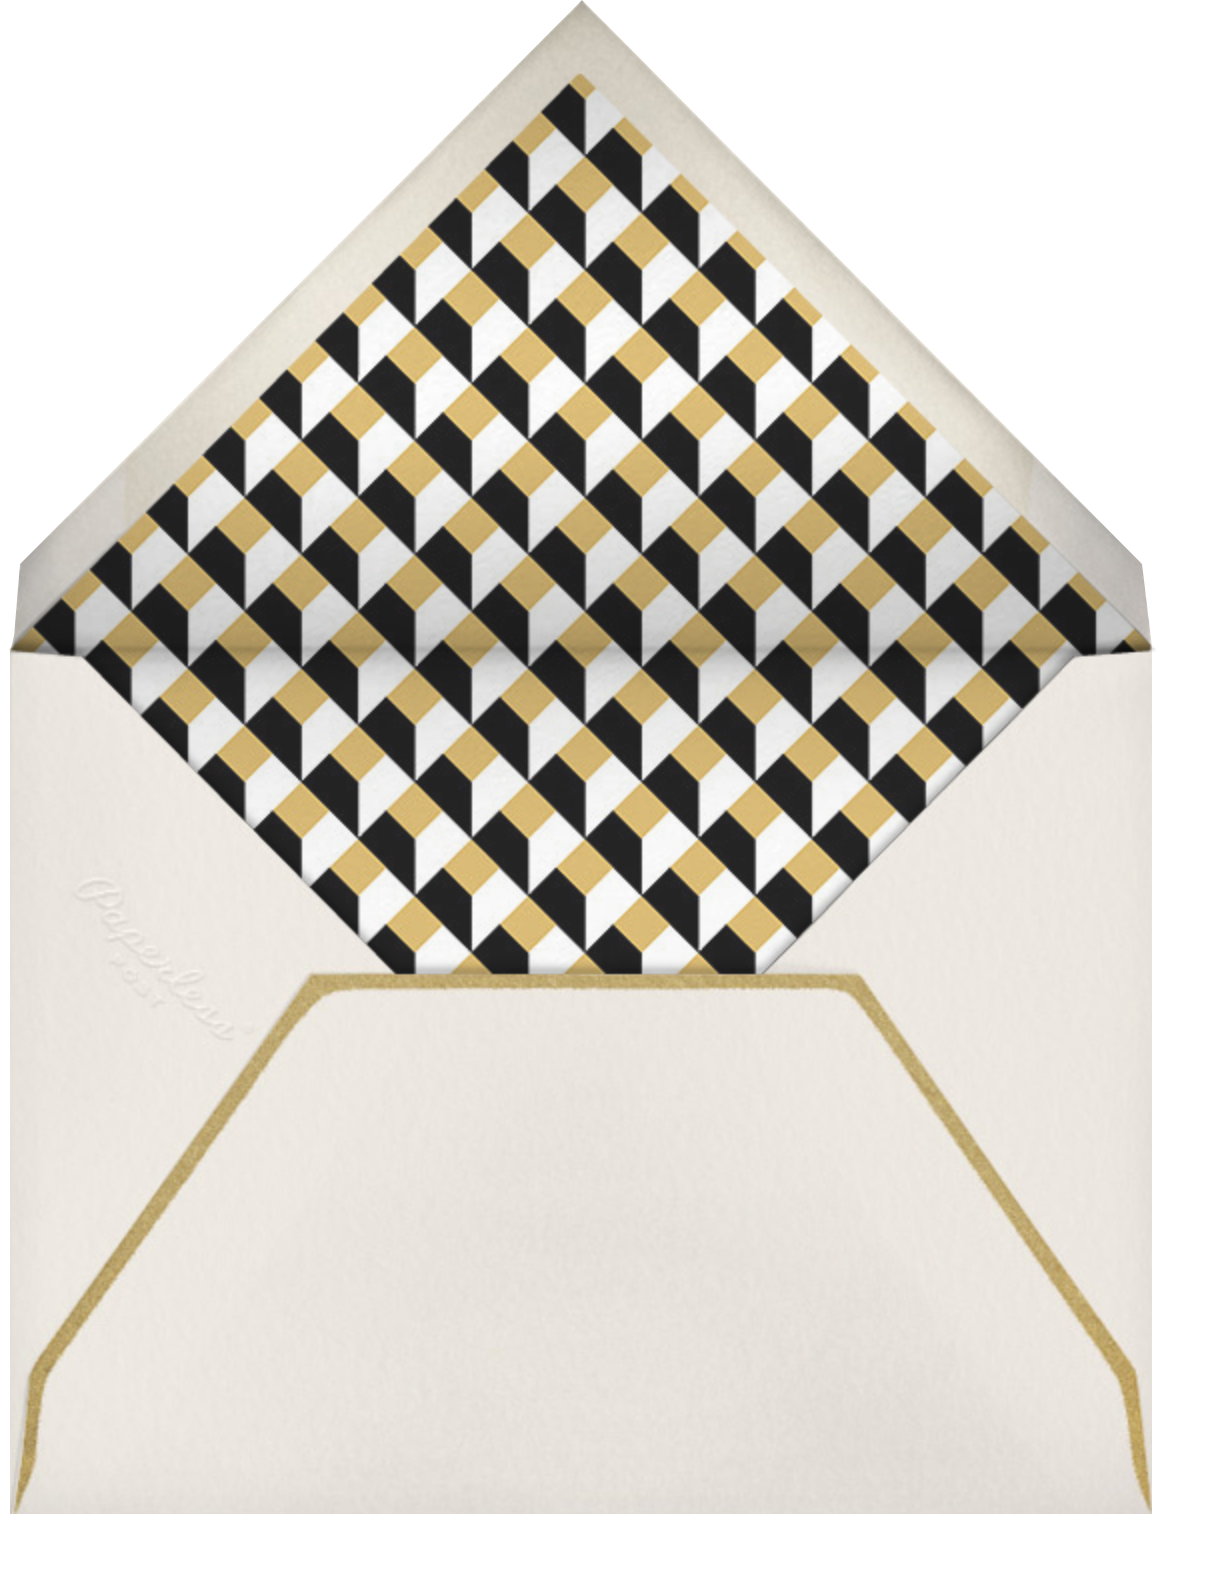 Gold Braid (Pitch) - Paperless Post - Adult birthday - envelope back